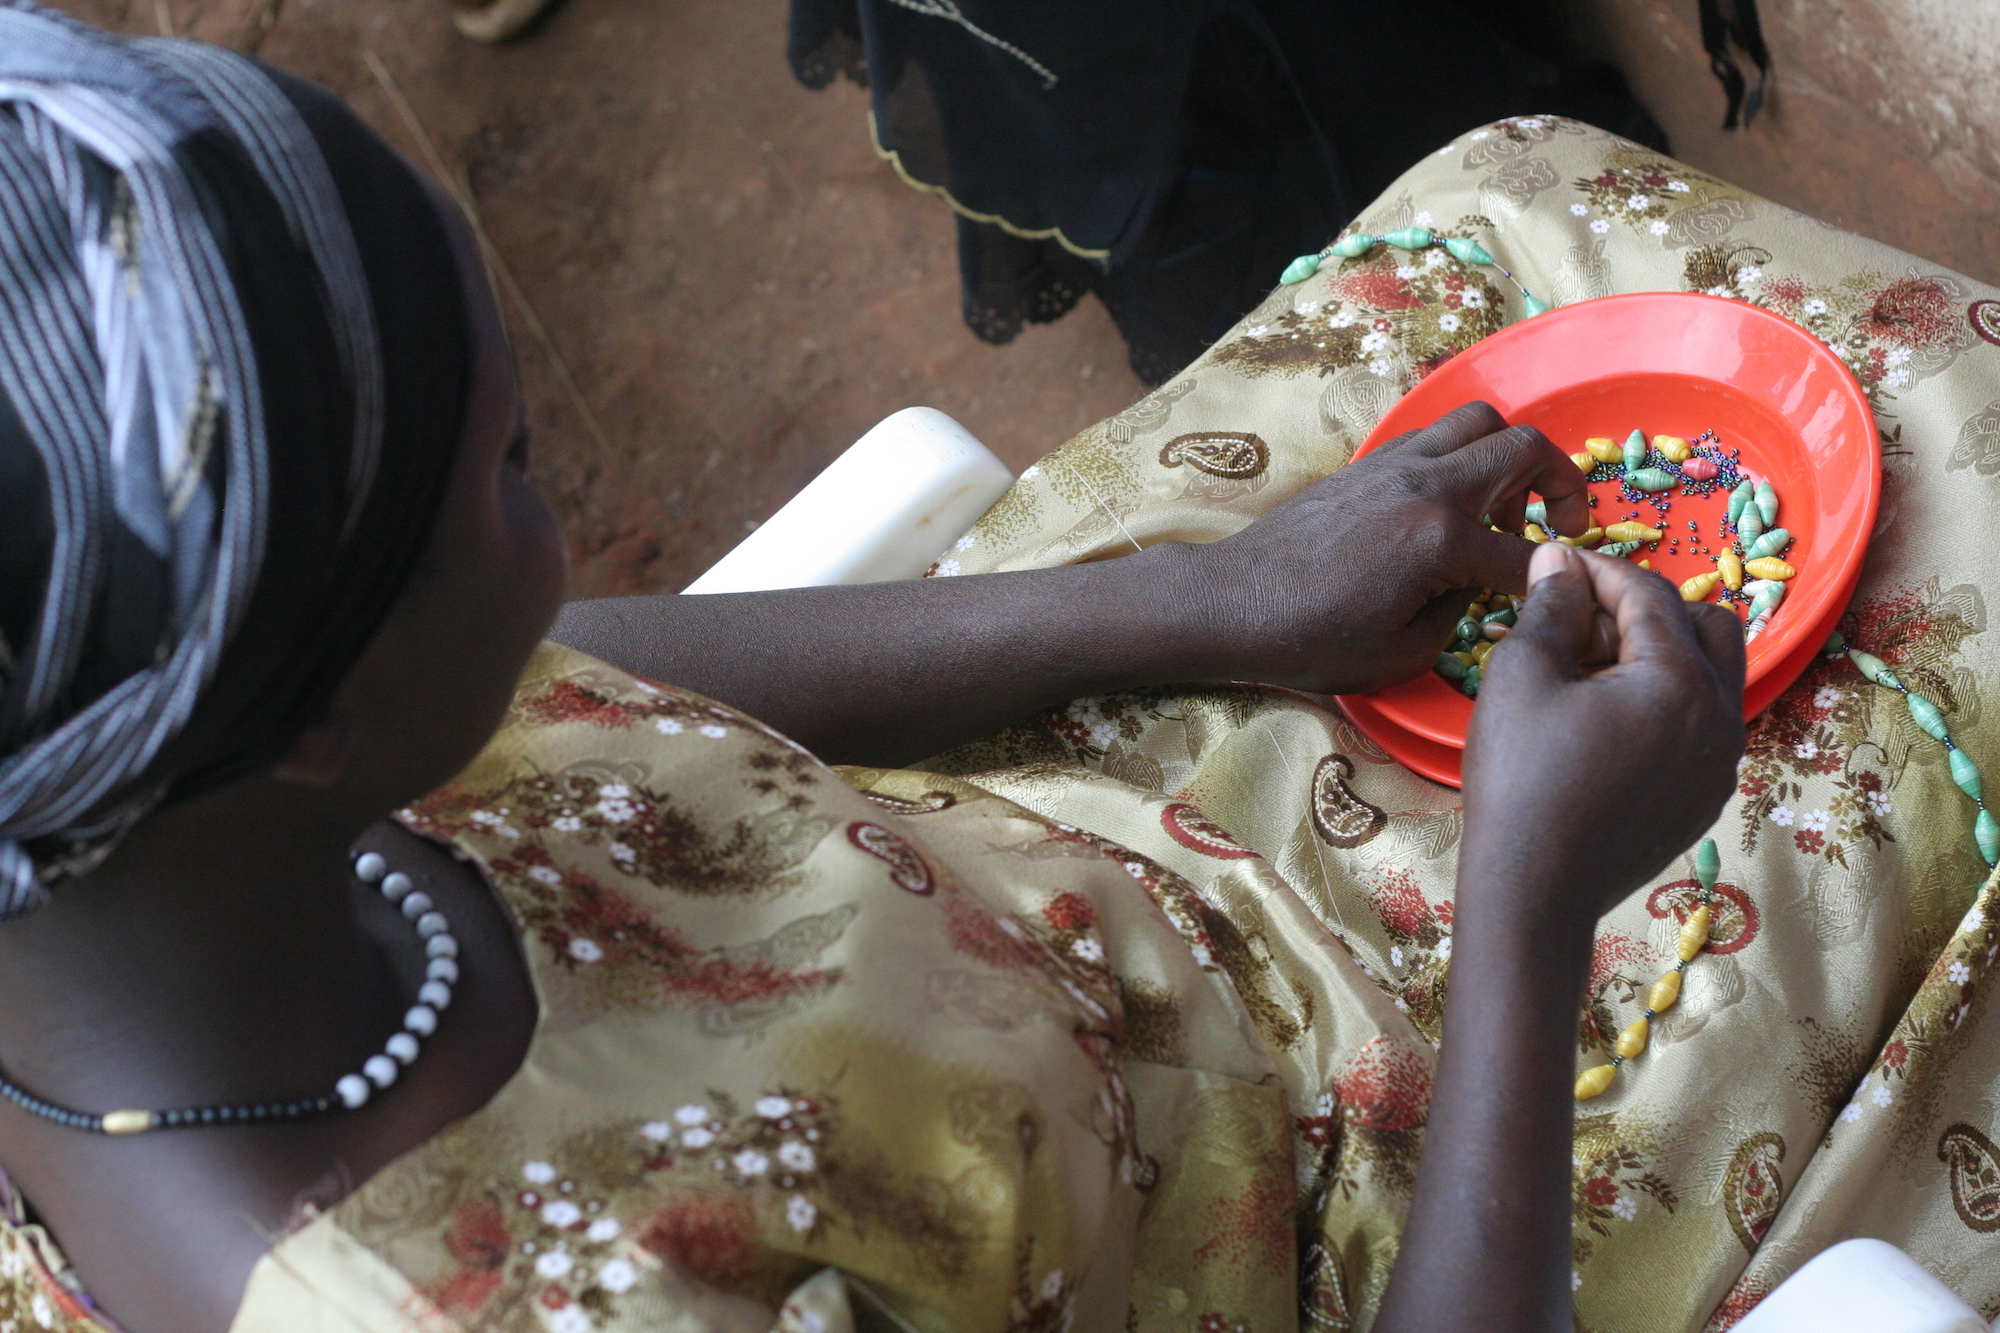 Woman stringing beads in her lap